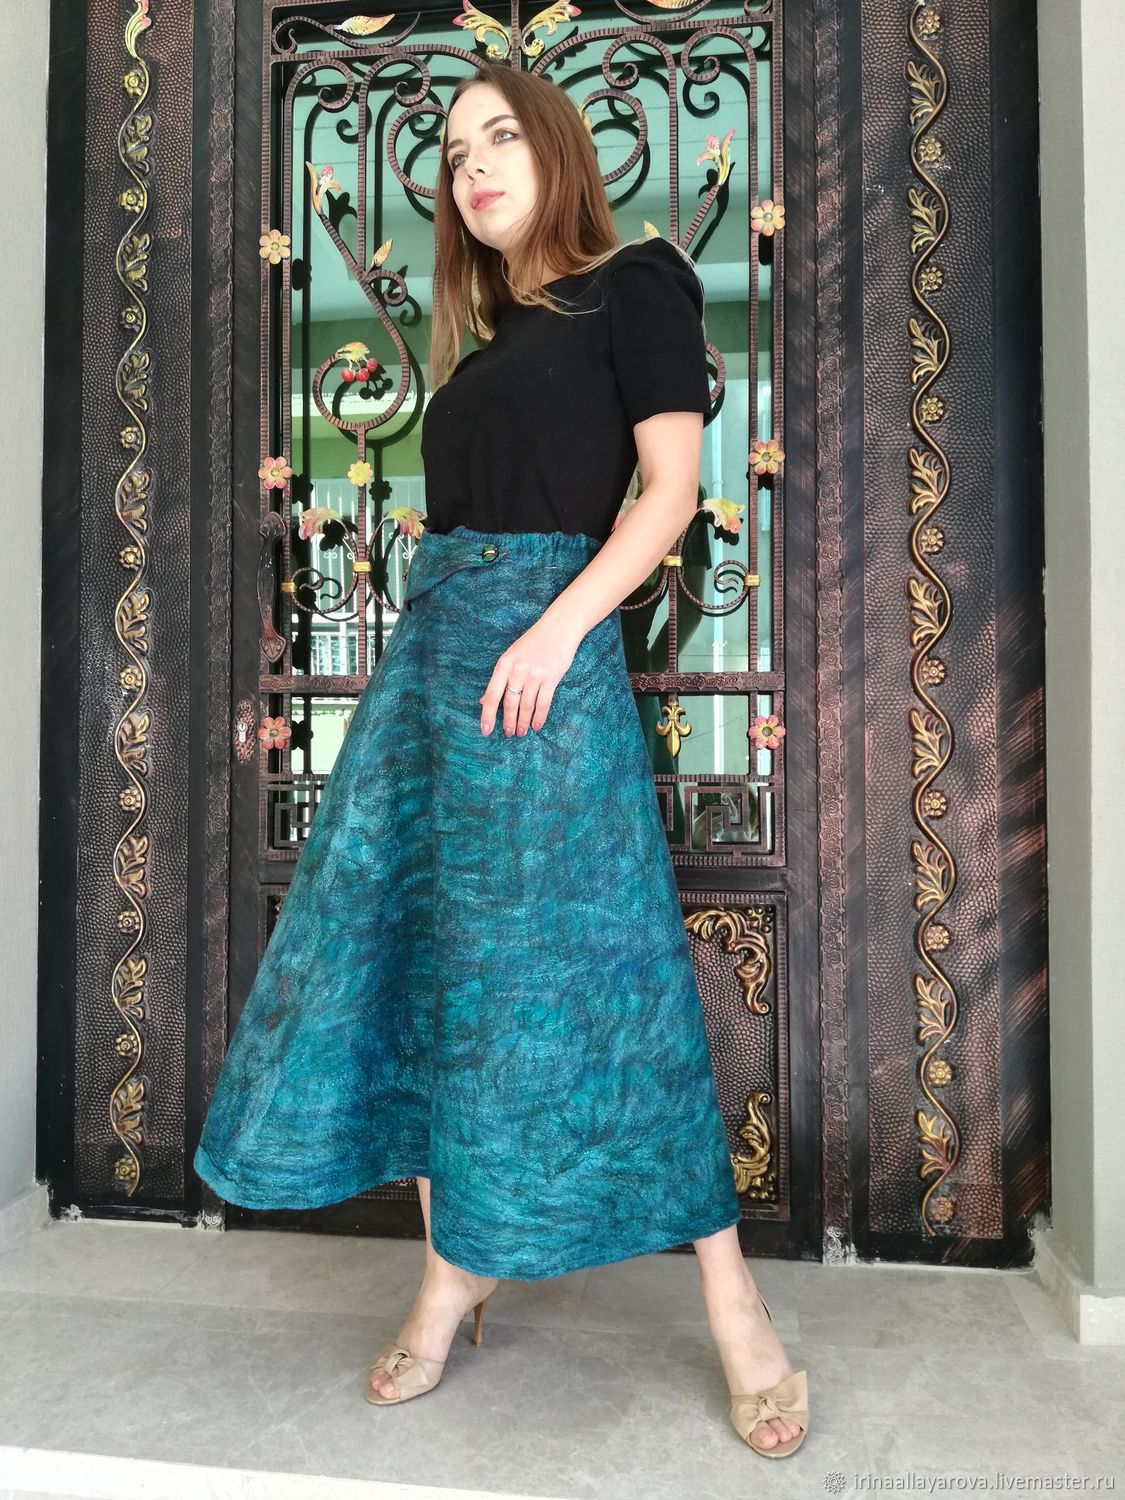 Double-sided skirt ' Double life', Skirts, Verhneuralsk,  Фото №1